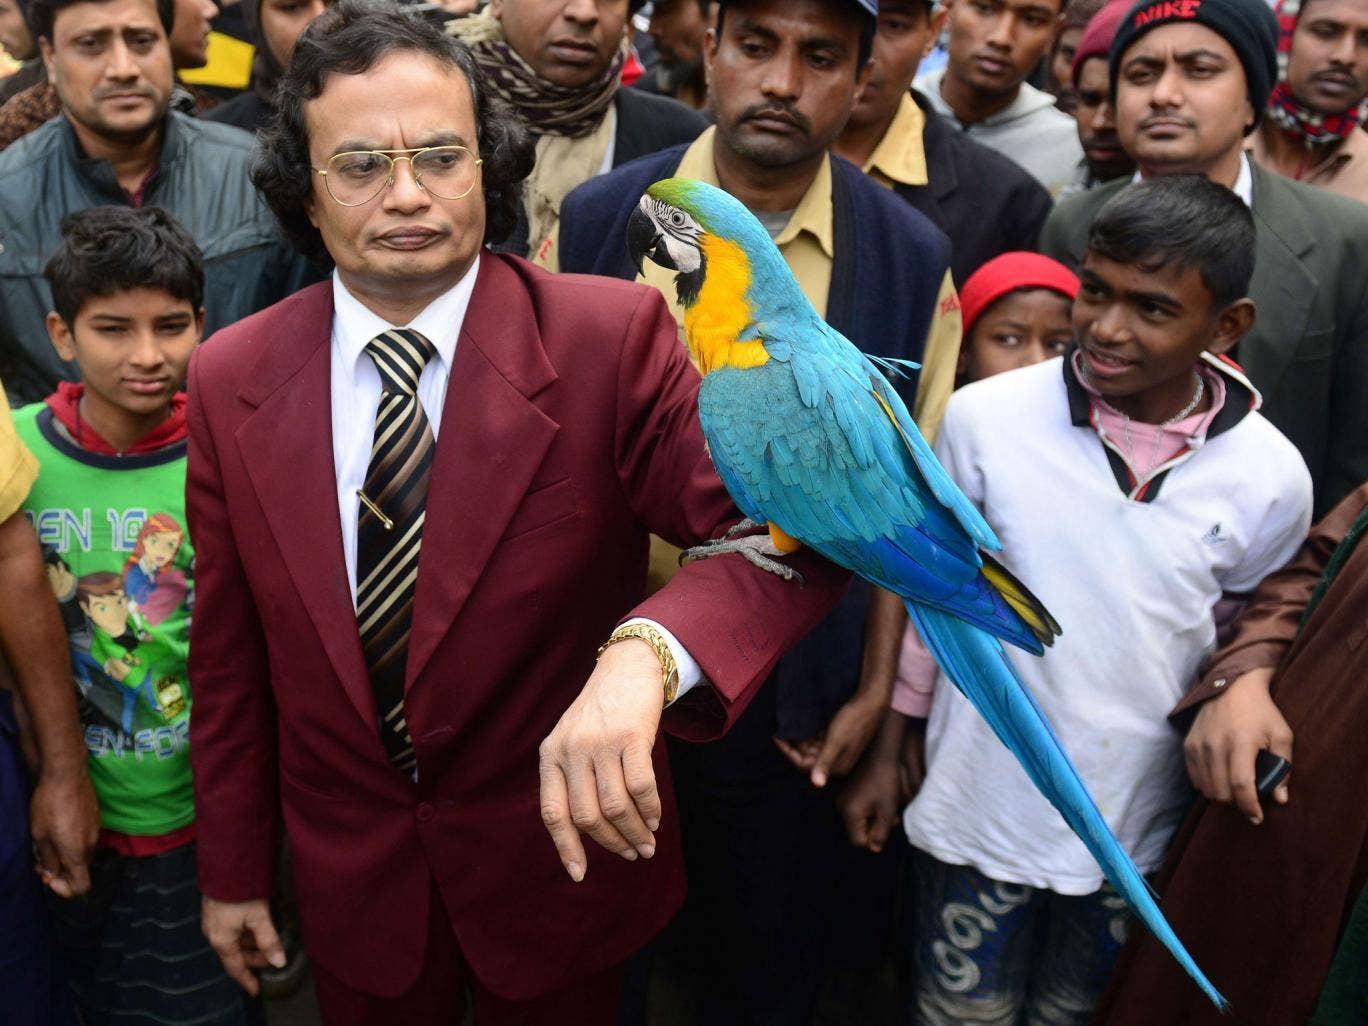 Parrot owner Abdul Wadud poses with Princess the macaw, who has refused to eat since being separated from her partner